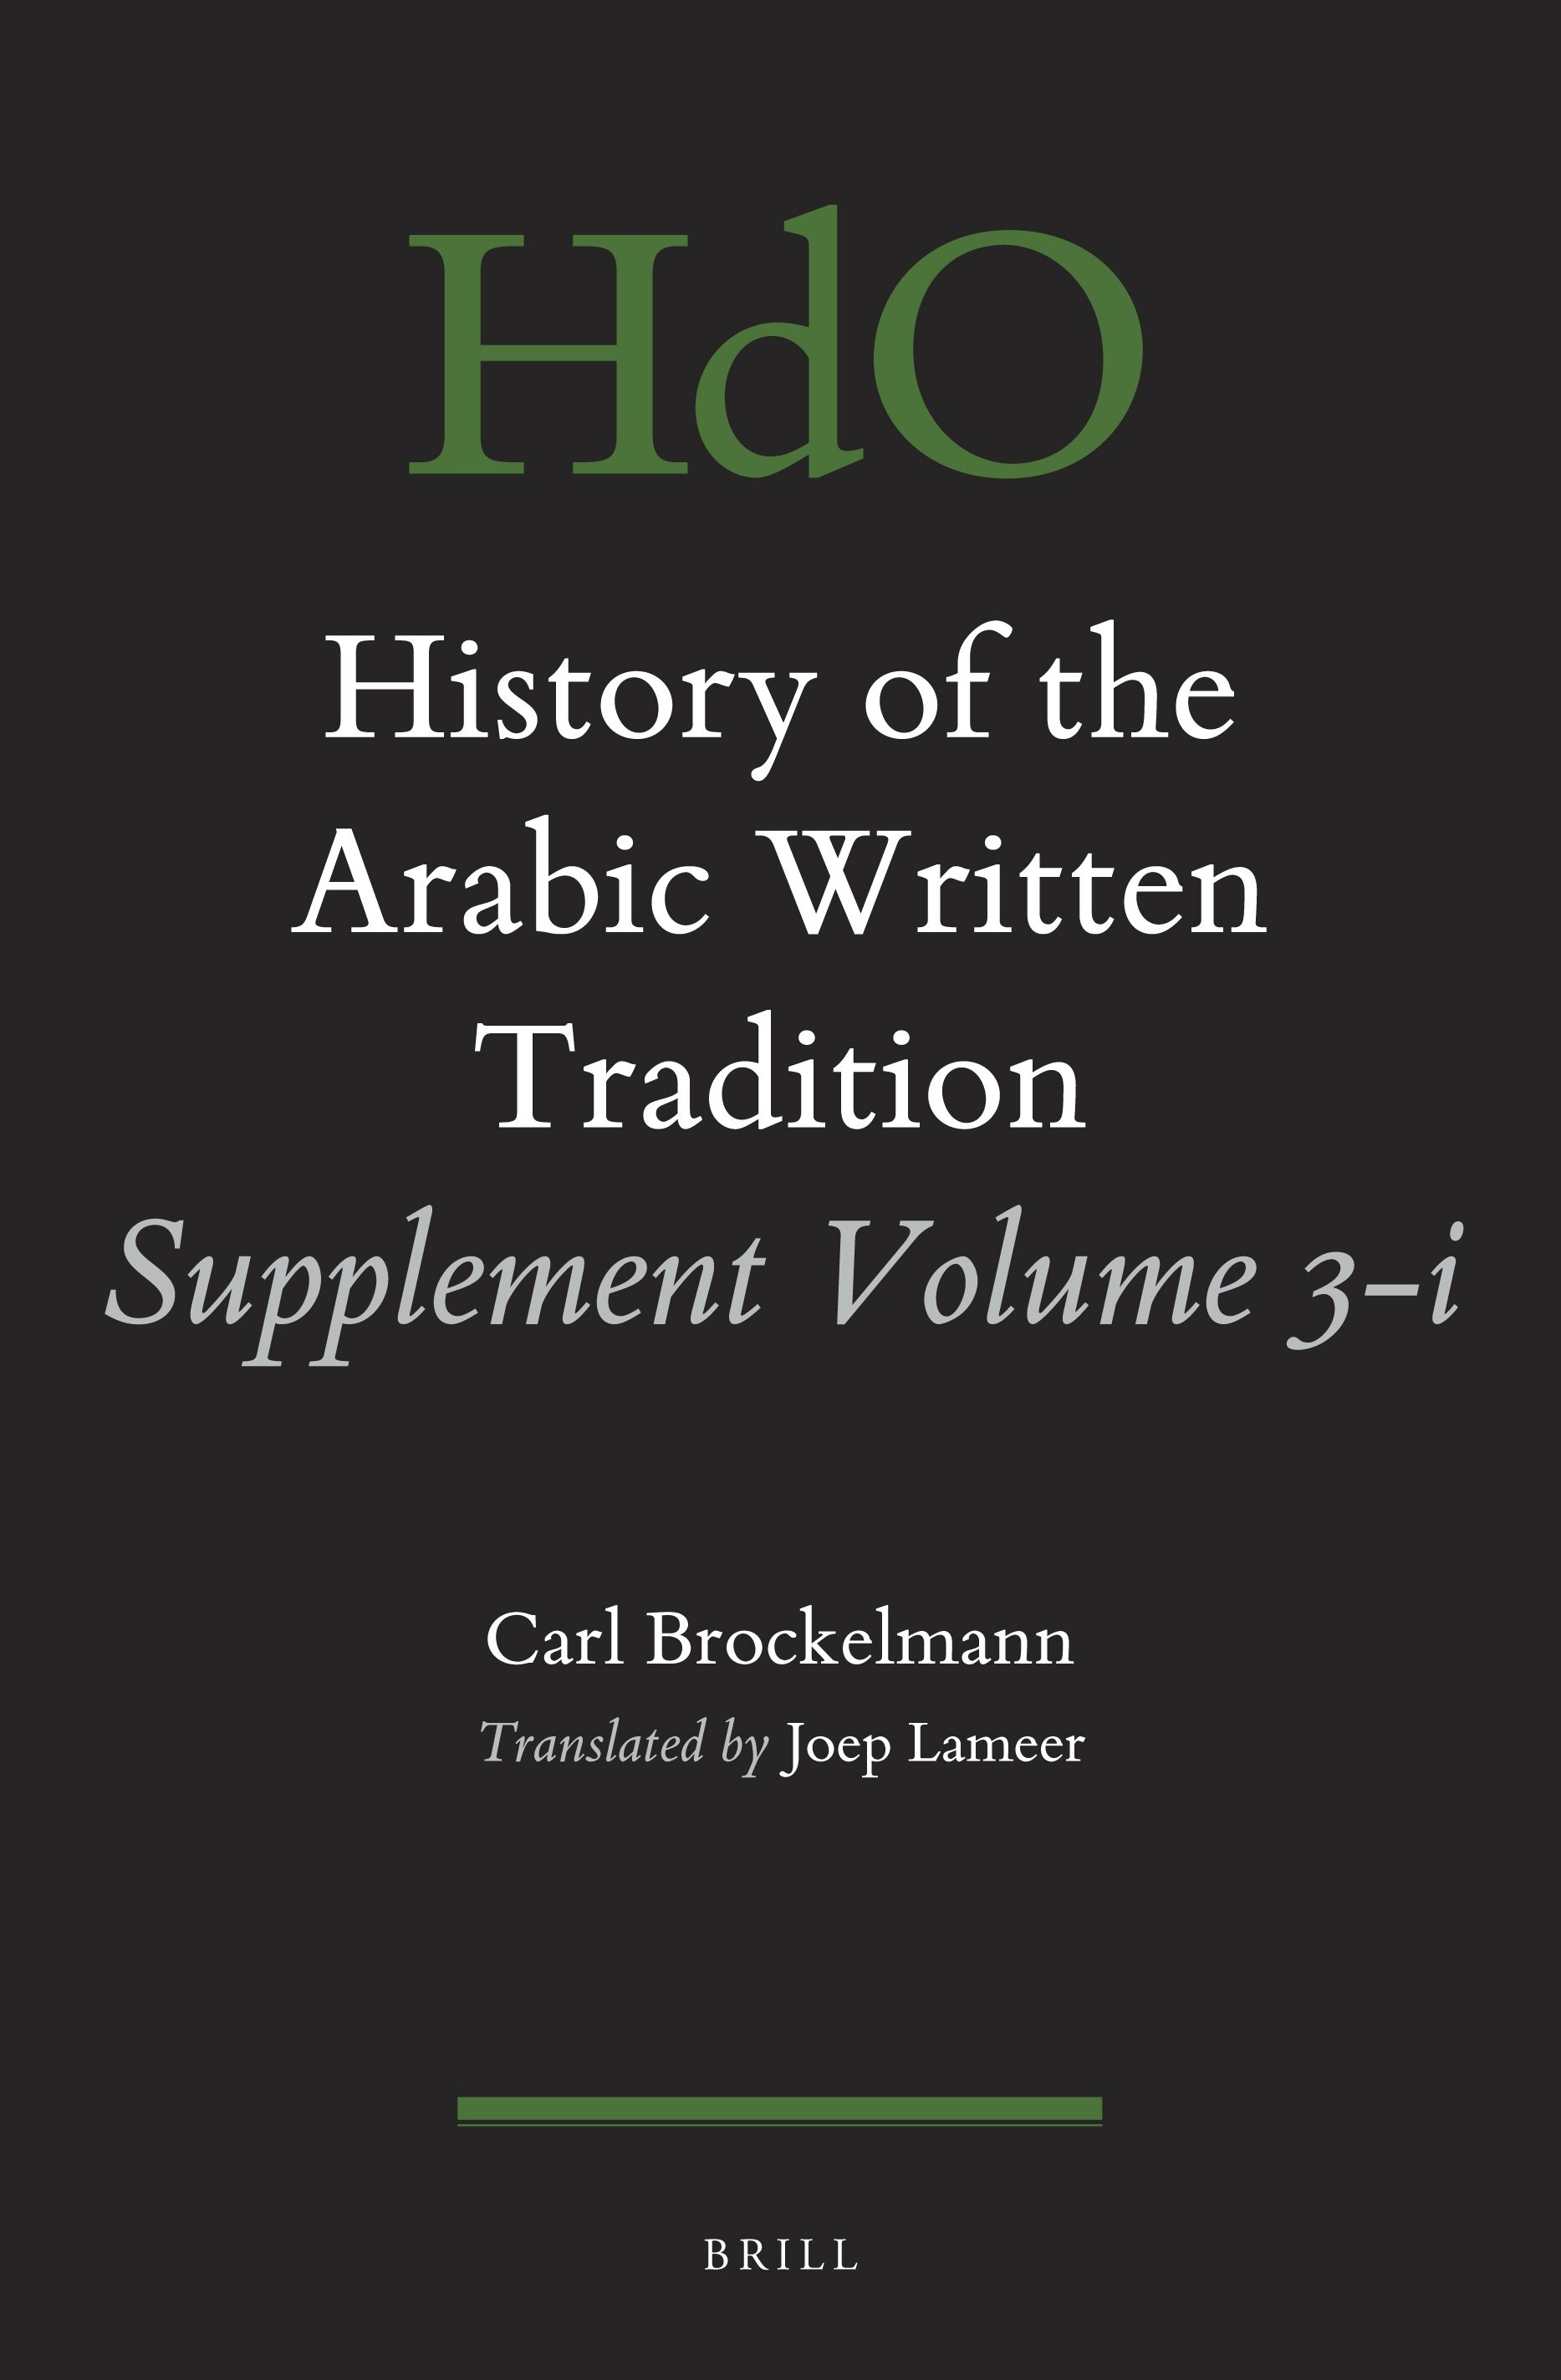 Modern Arabic Literature In History Of The Arabic Written